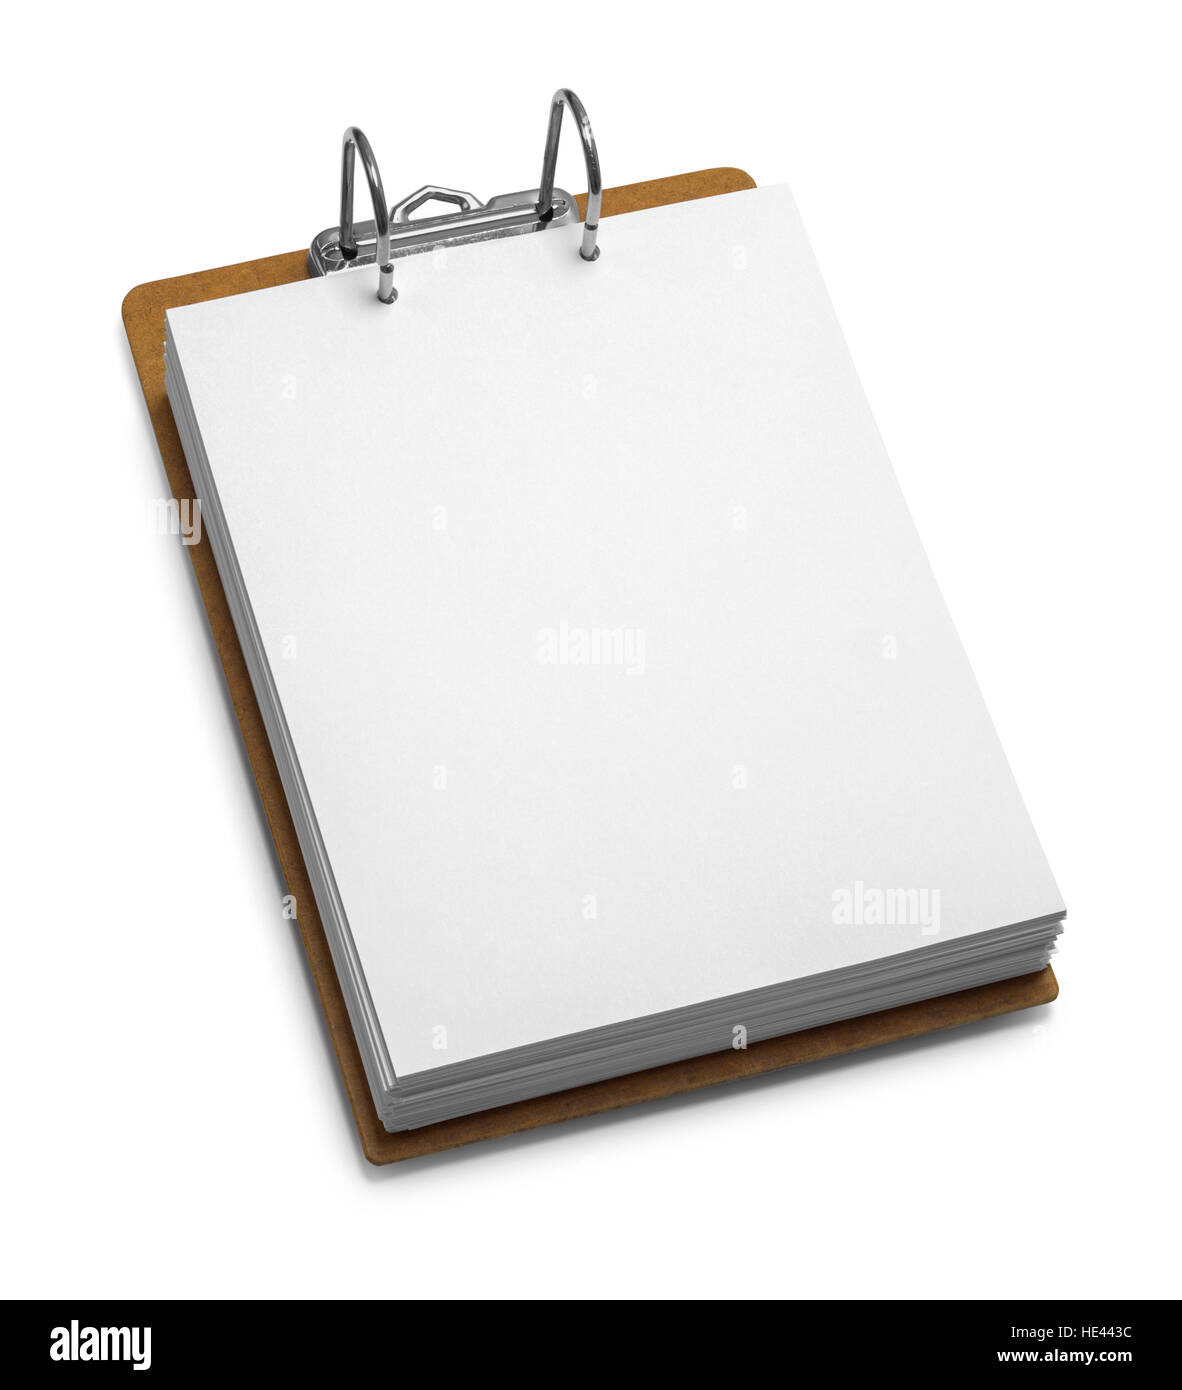 Large Office Clipboard with Binder Isolated on White Background. - Stock Image